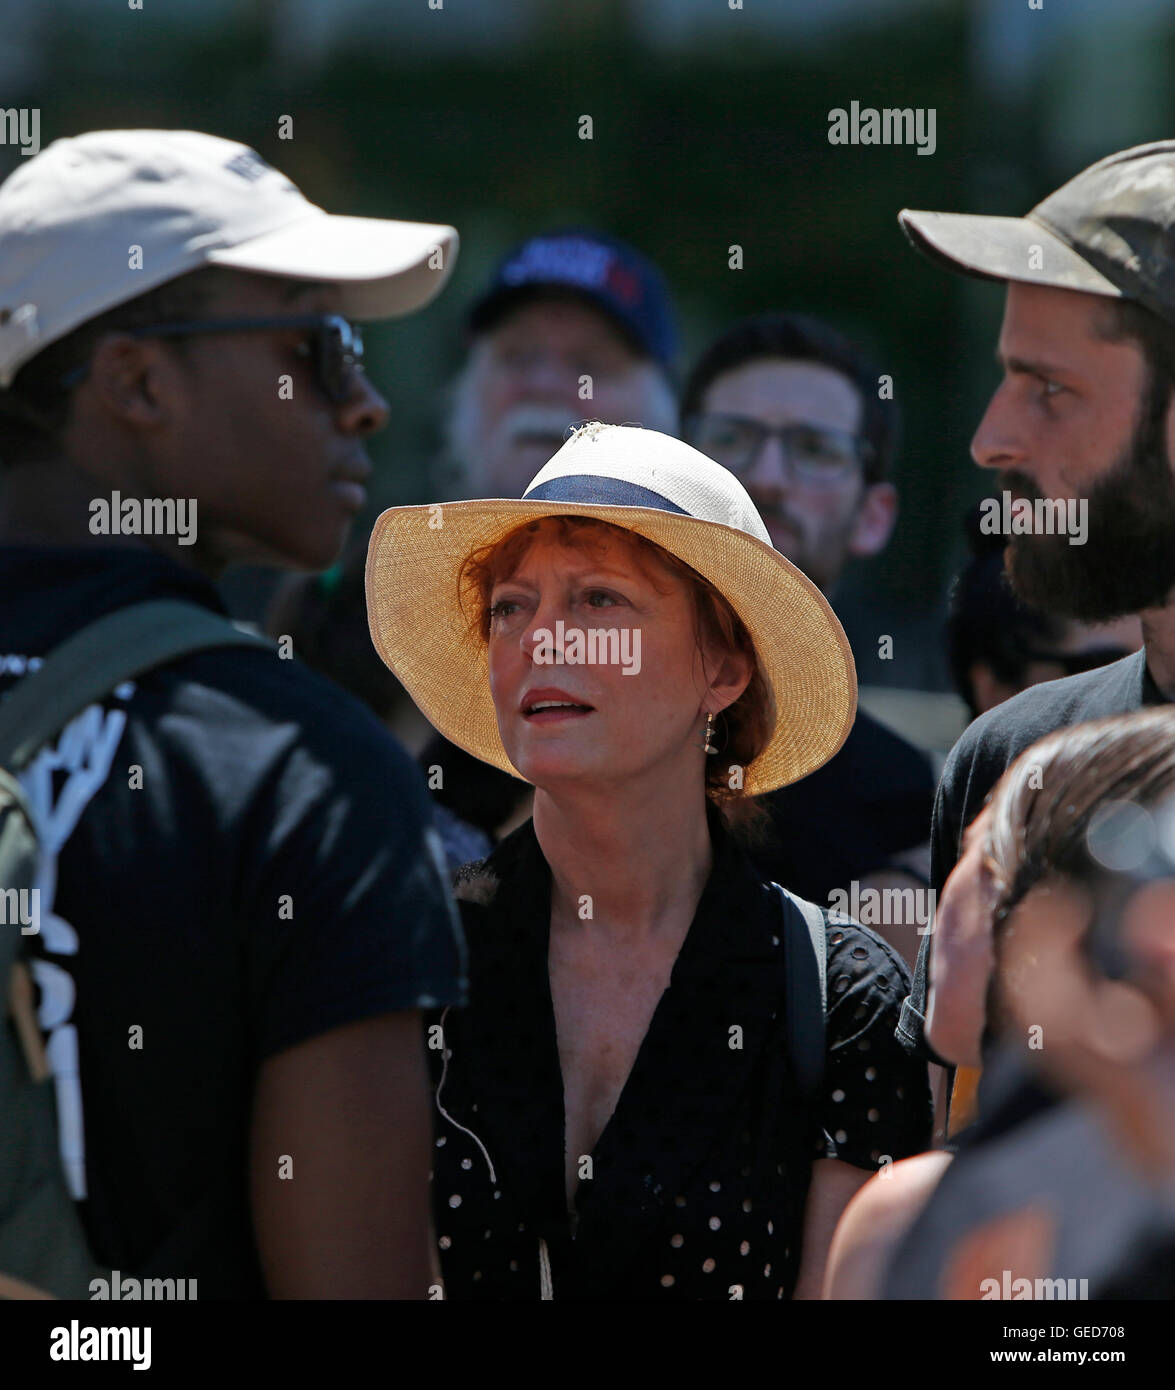 New York City, United States. 23rd July, 2016. Actress & movement supporter Susan Sarandon talks with demonstration - Stock Image